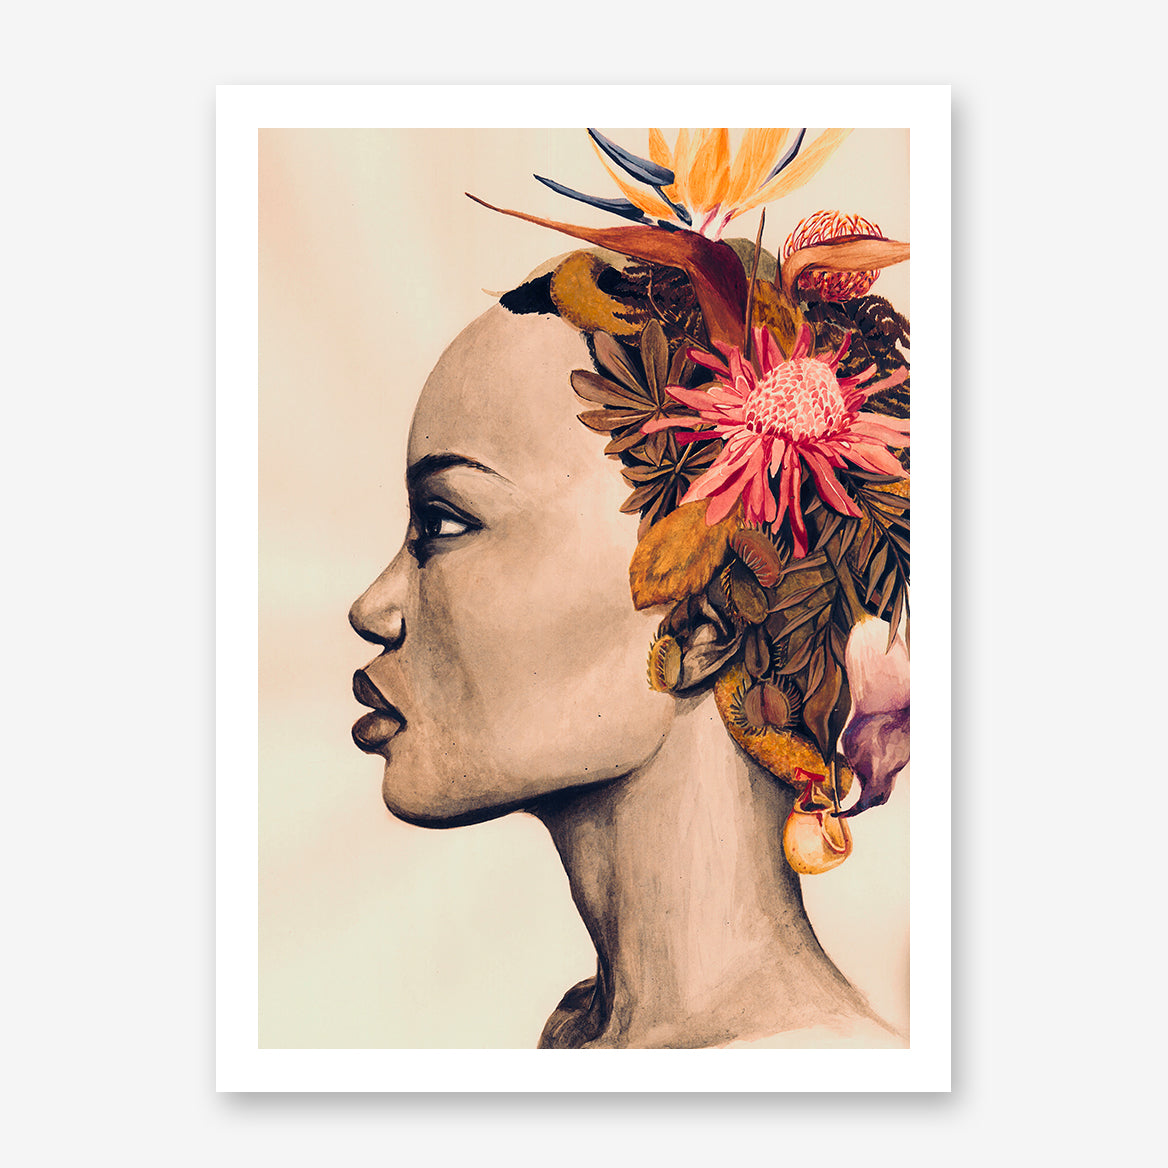 Fashion poster print of an original painted art, with a woman's portrait with colourful flowers on her head